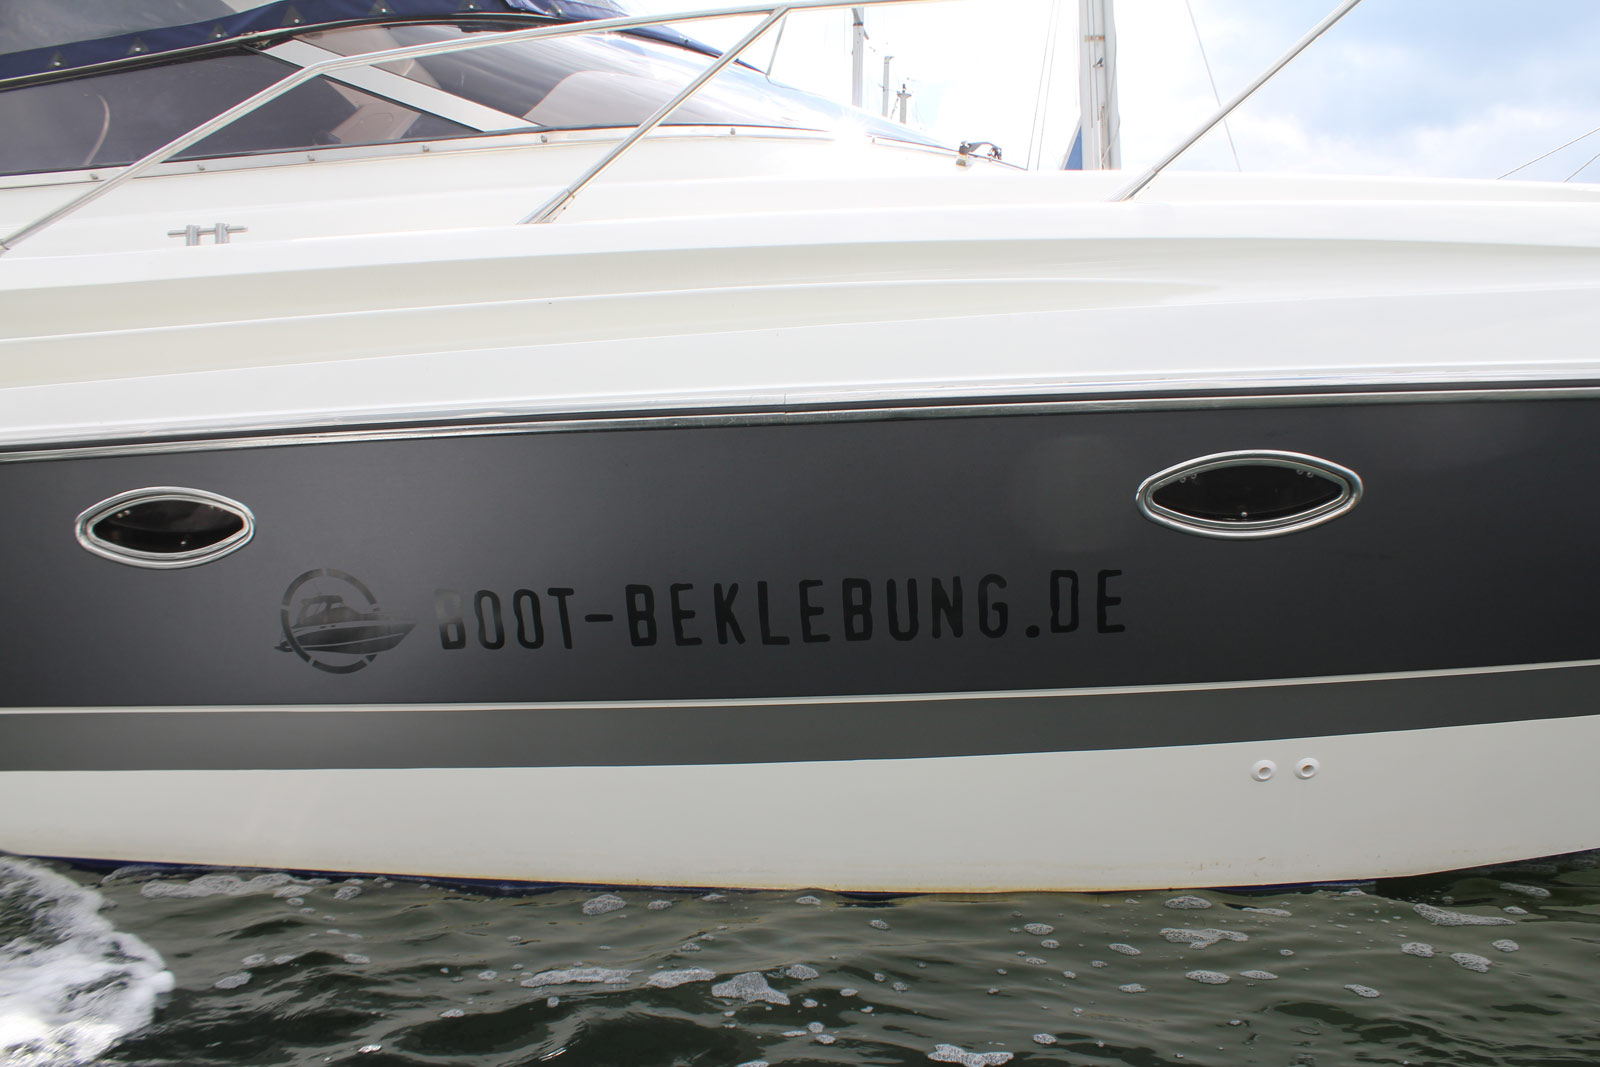 BOOT_BEKLEBUNG_SUNSEEKER_ANTHRAZIT_MATT_METALLIC_02